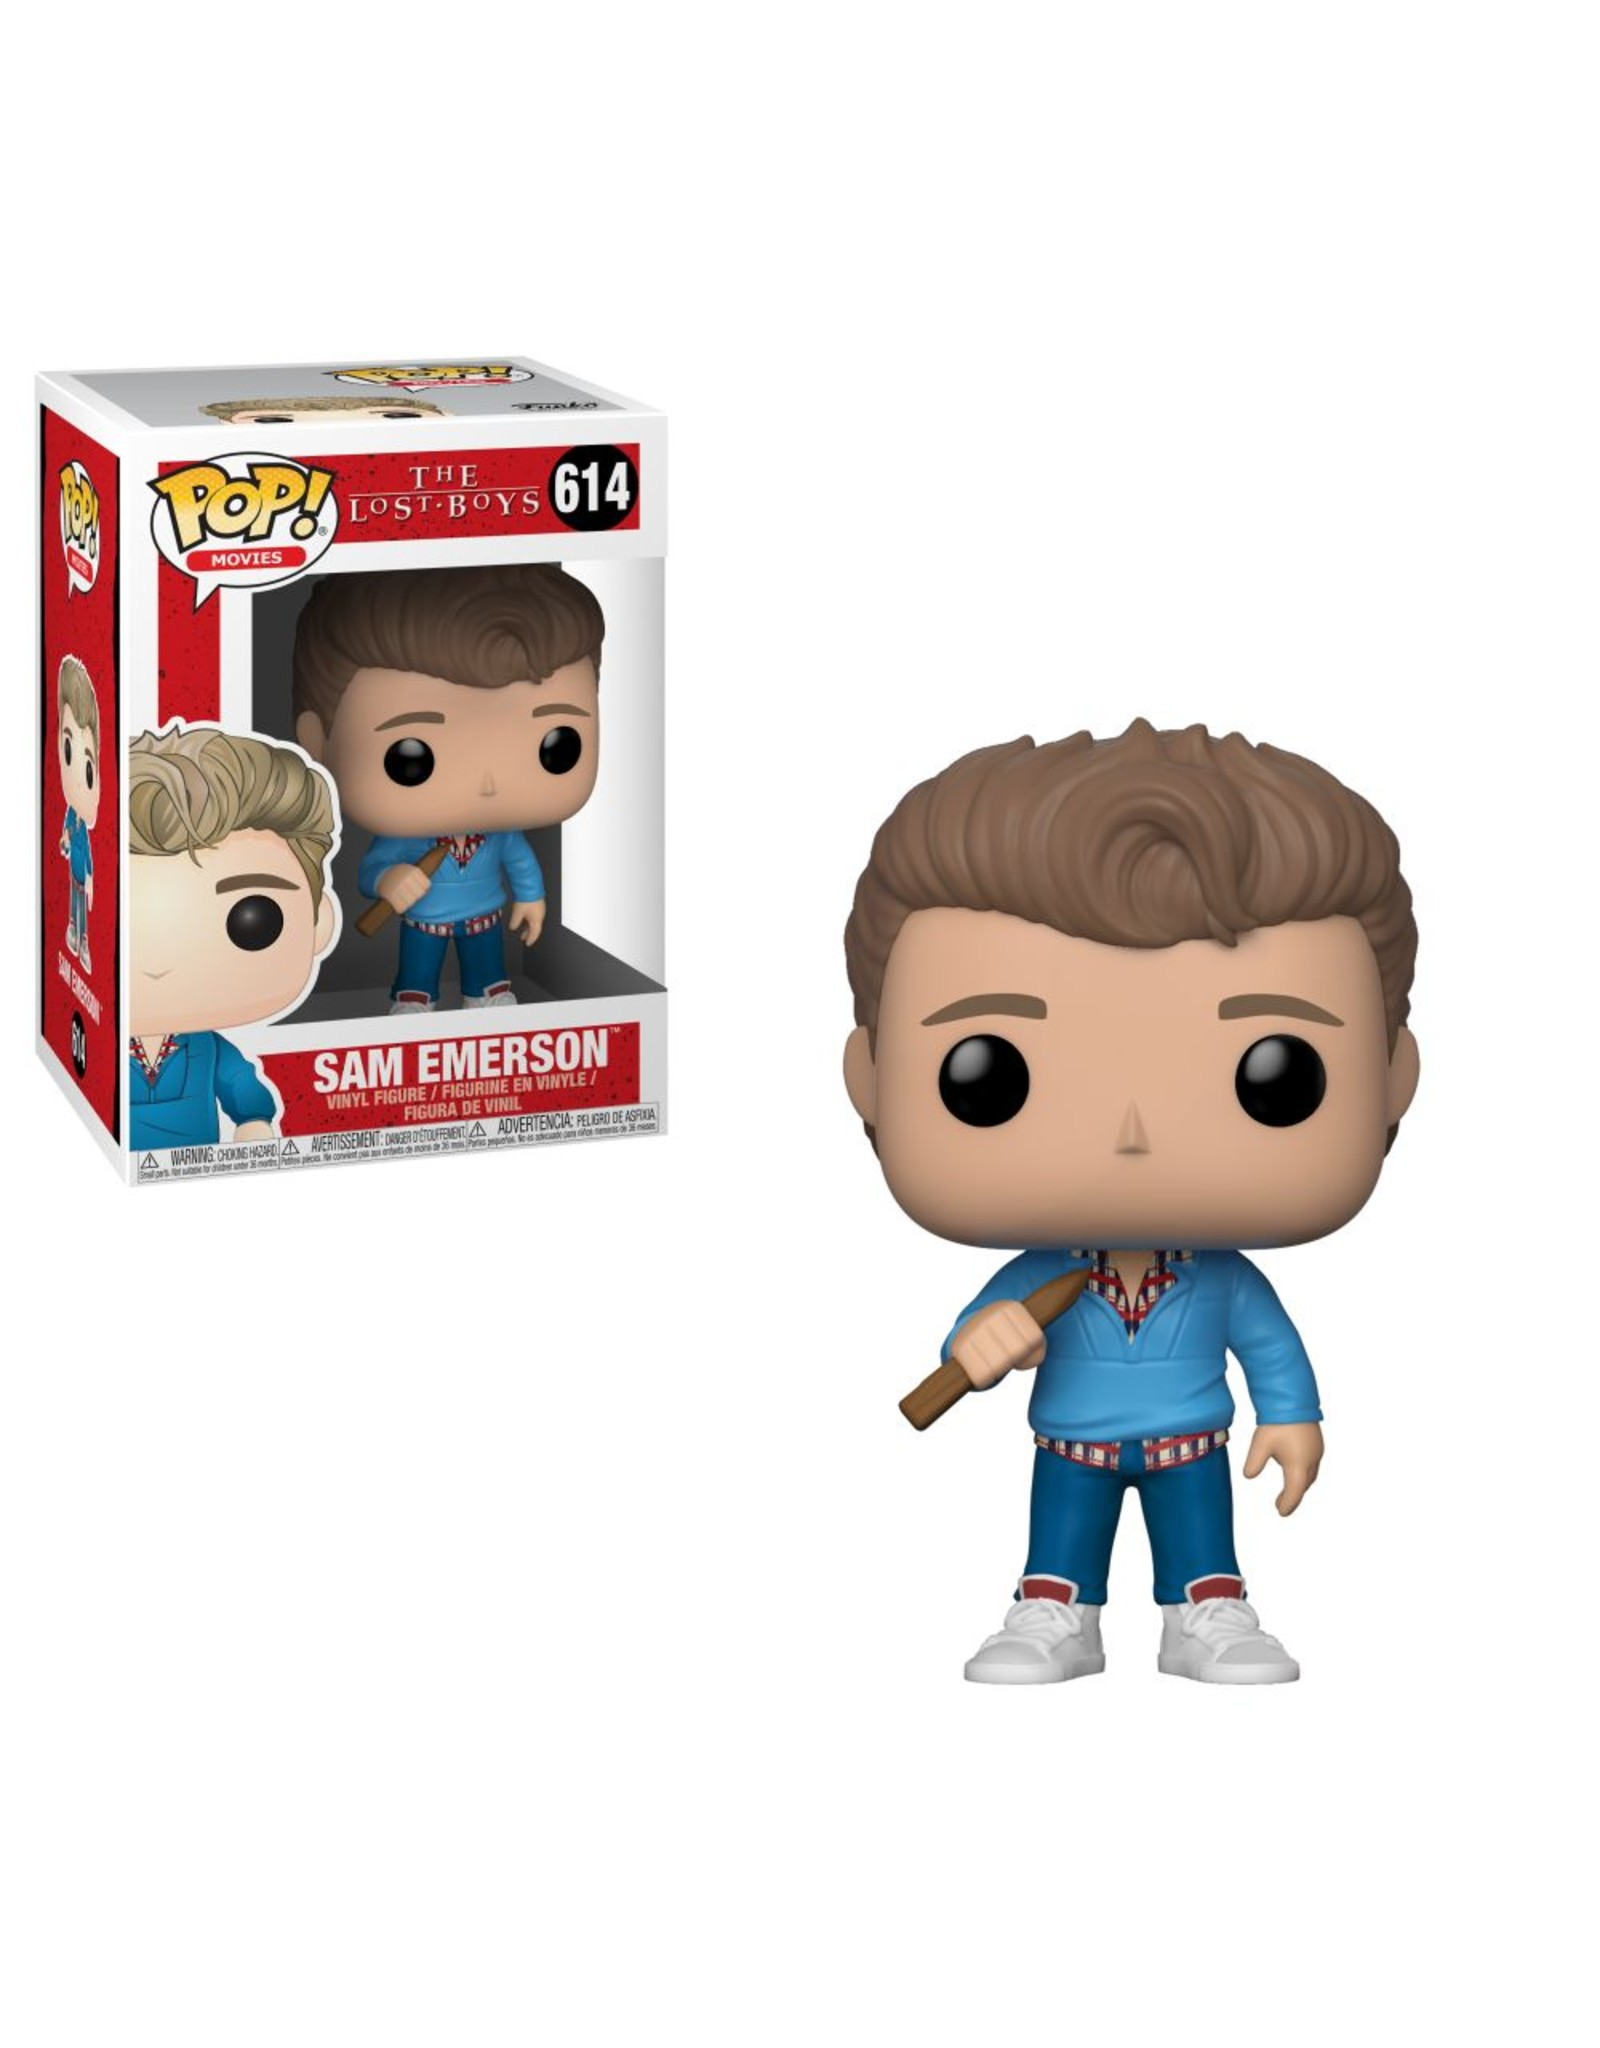 FUNKO POP LOST BOYS SAM EMERSON VINYL FIG